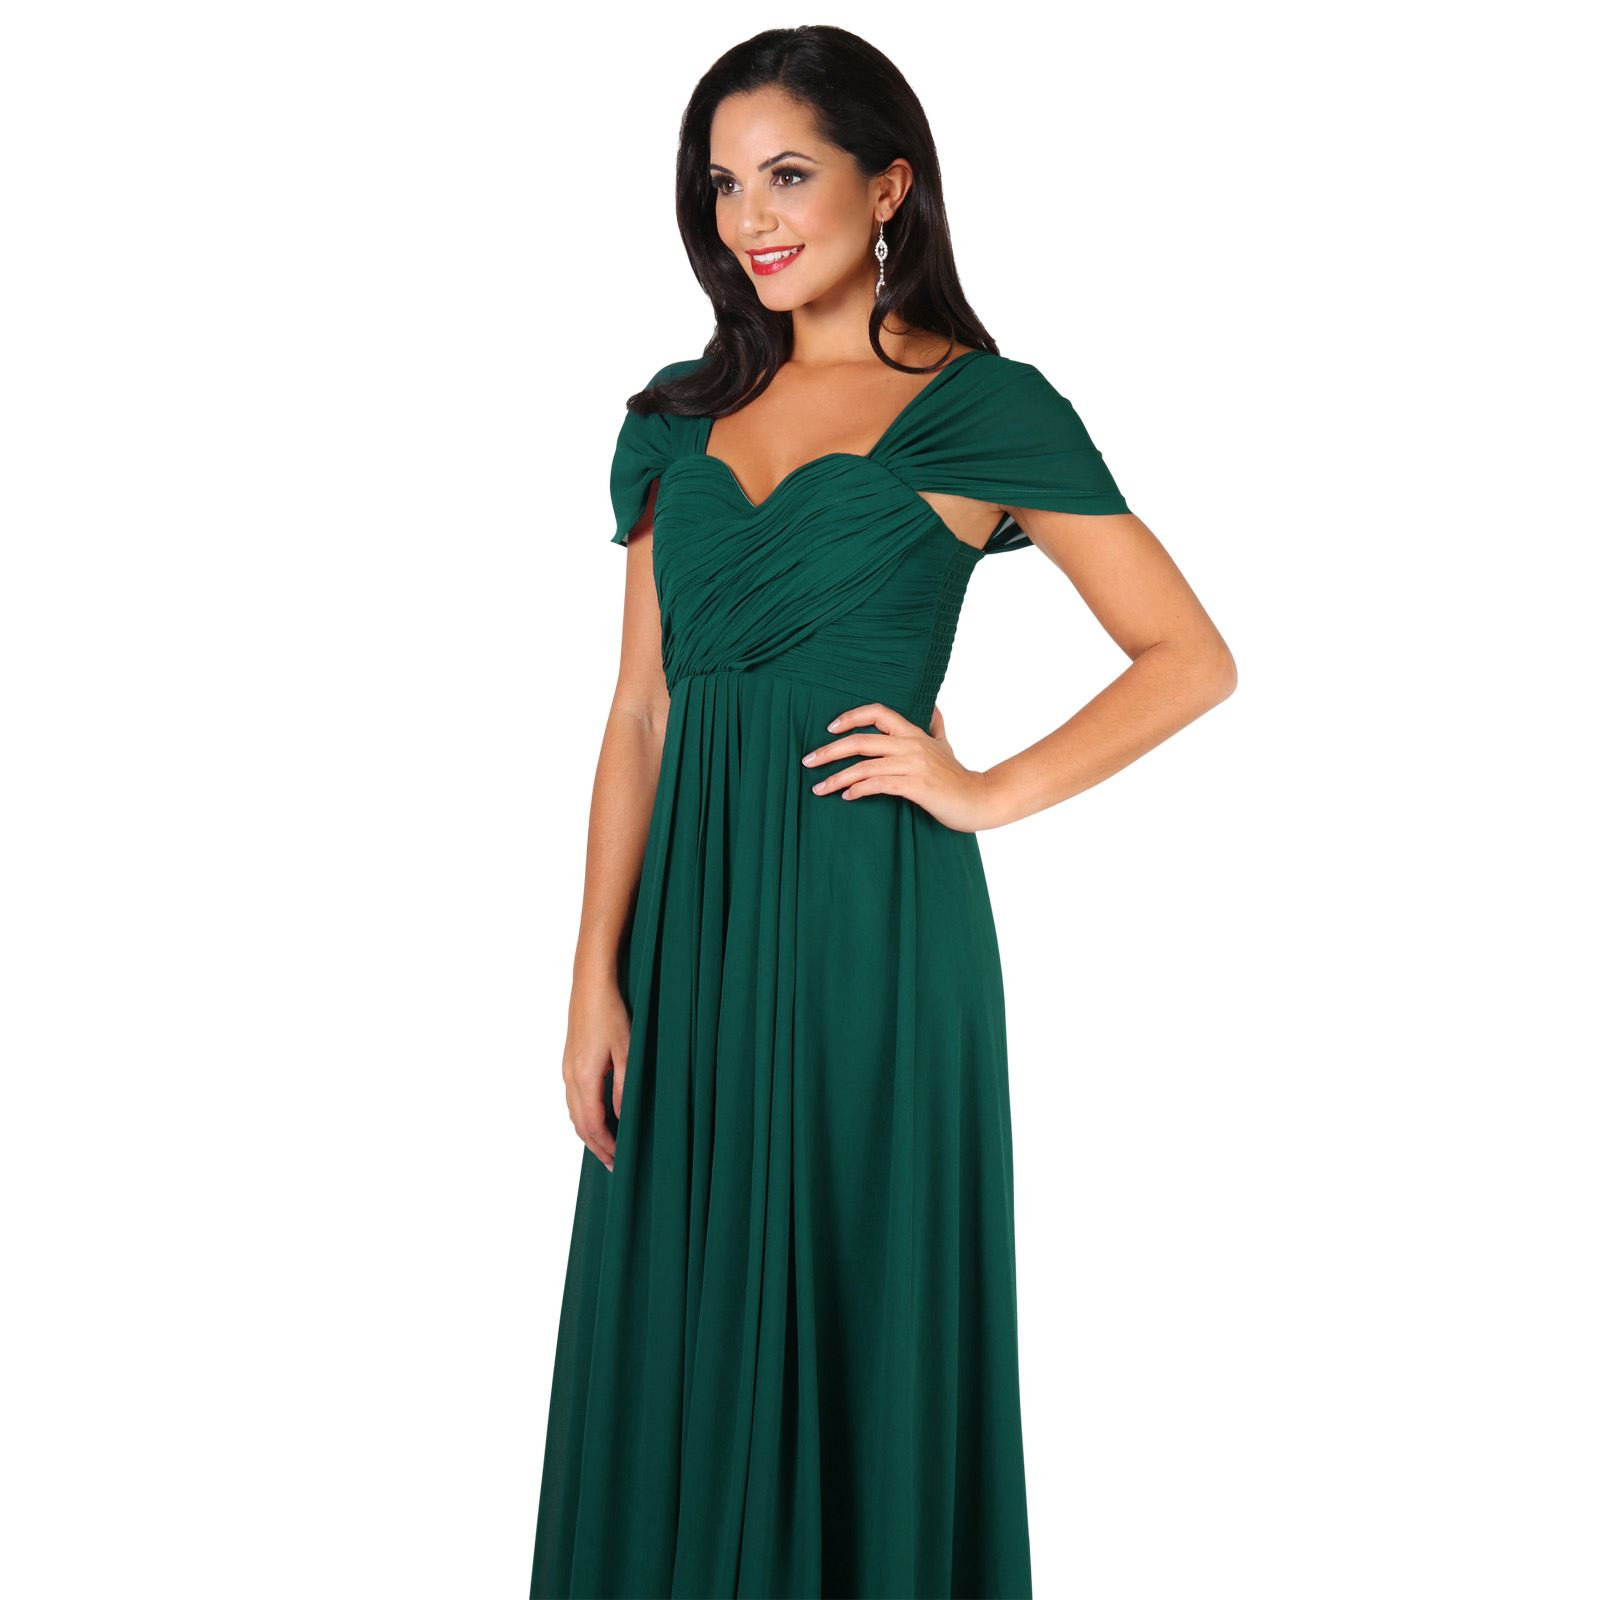 Womens-Formal-Evening-Wedding-Maxi-Prom-Dress-Long-On-Off-Shoulder-Ball-Gown thumbnail 20